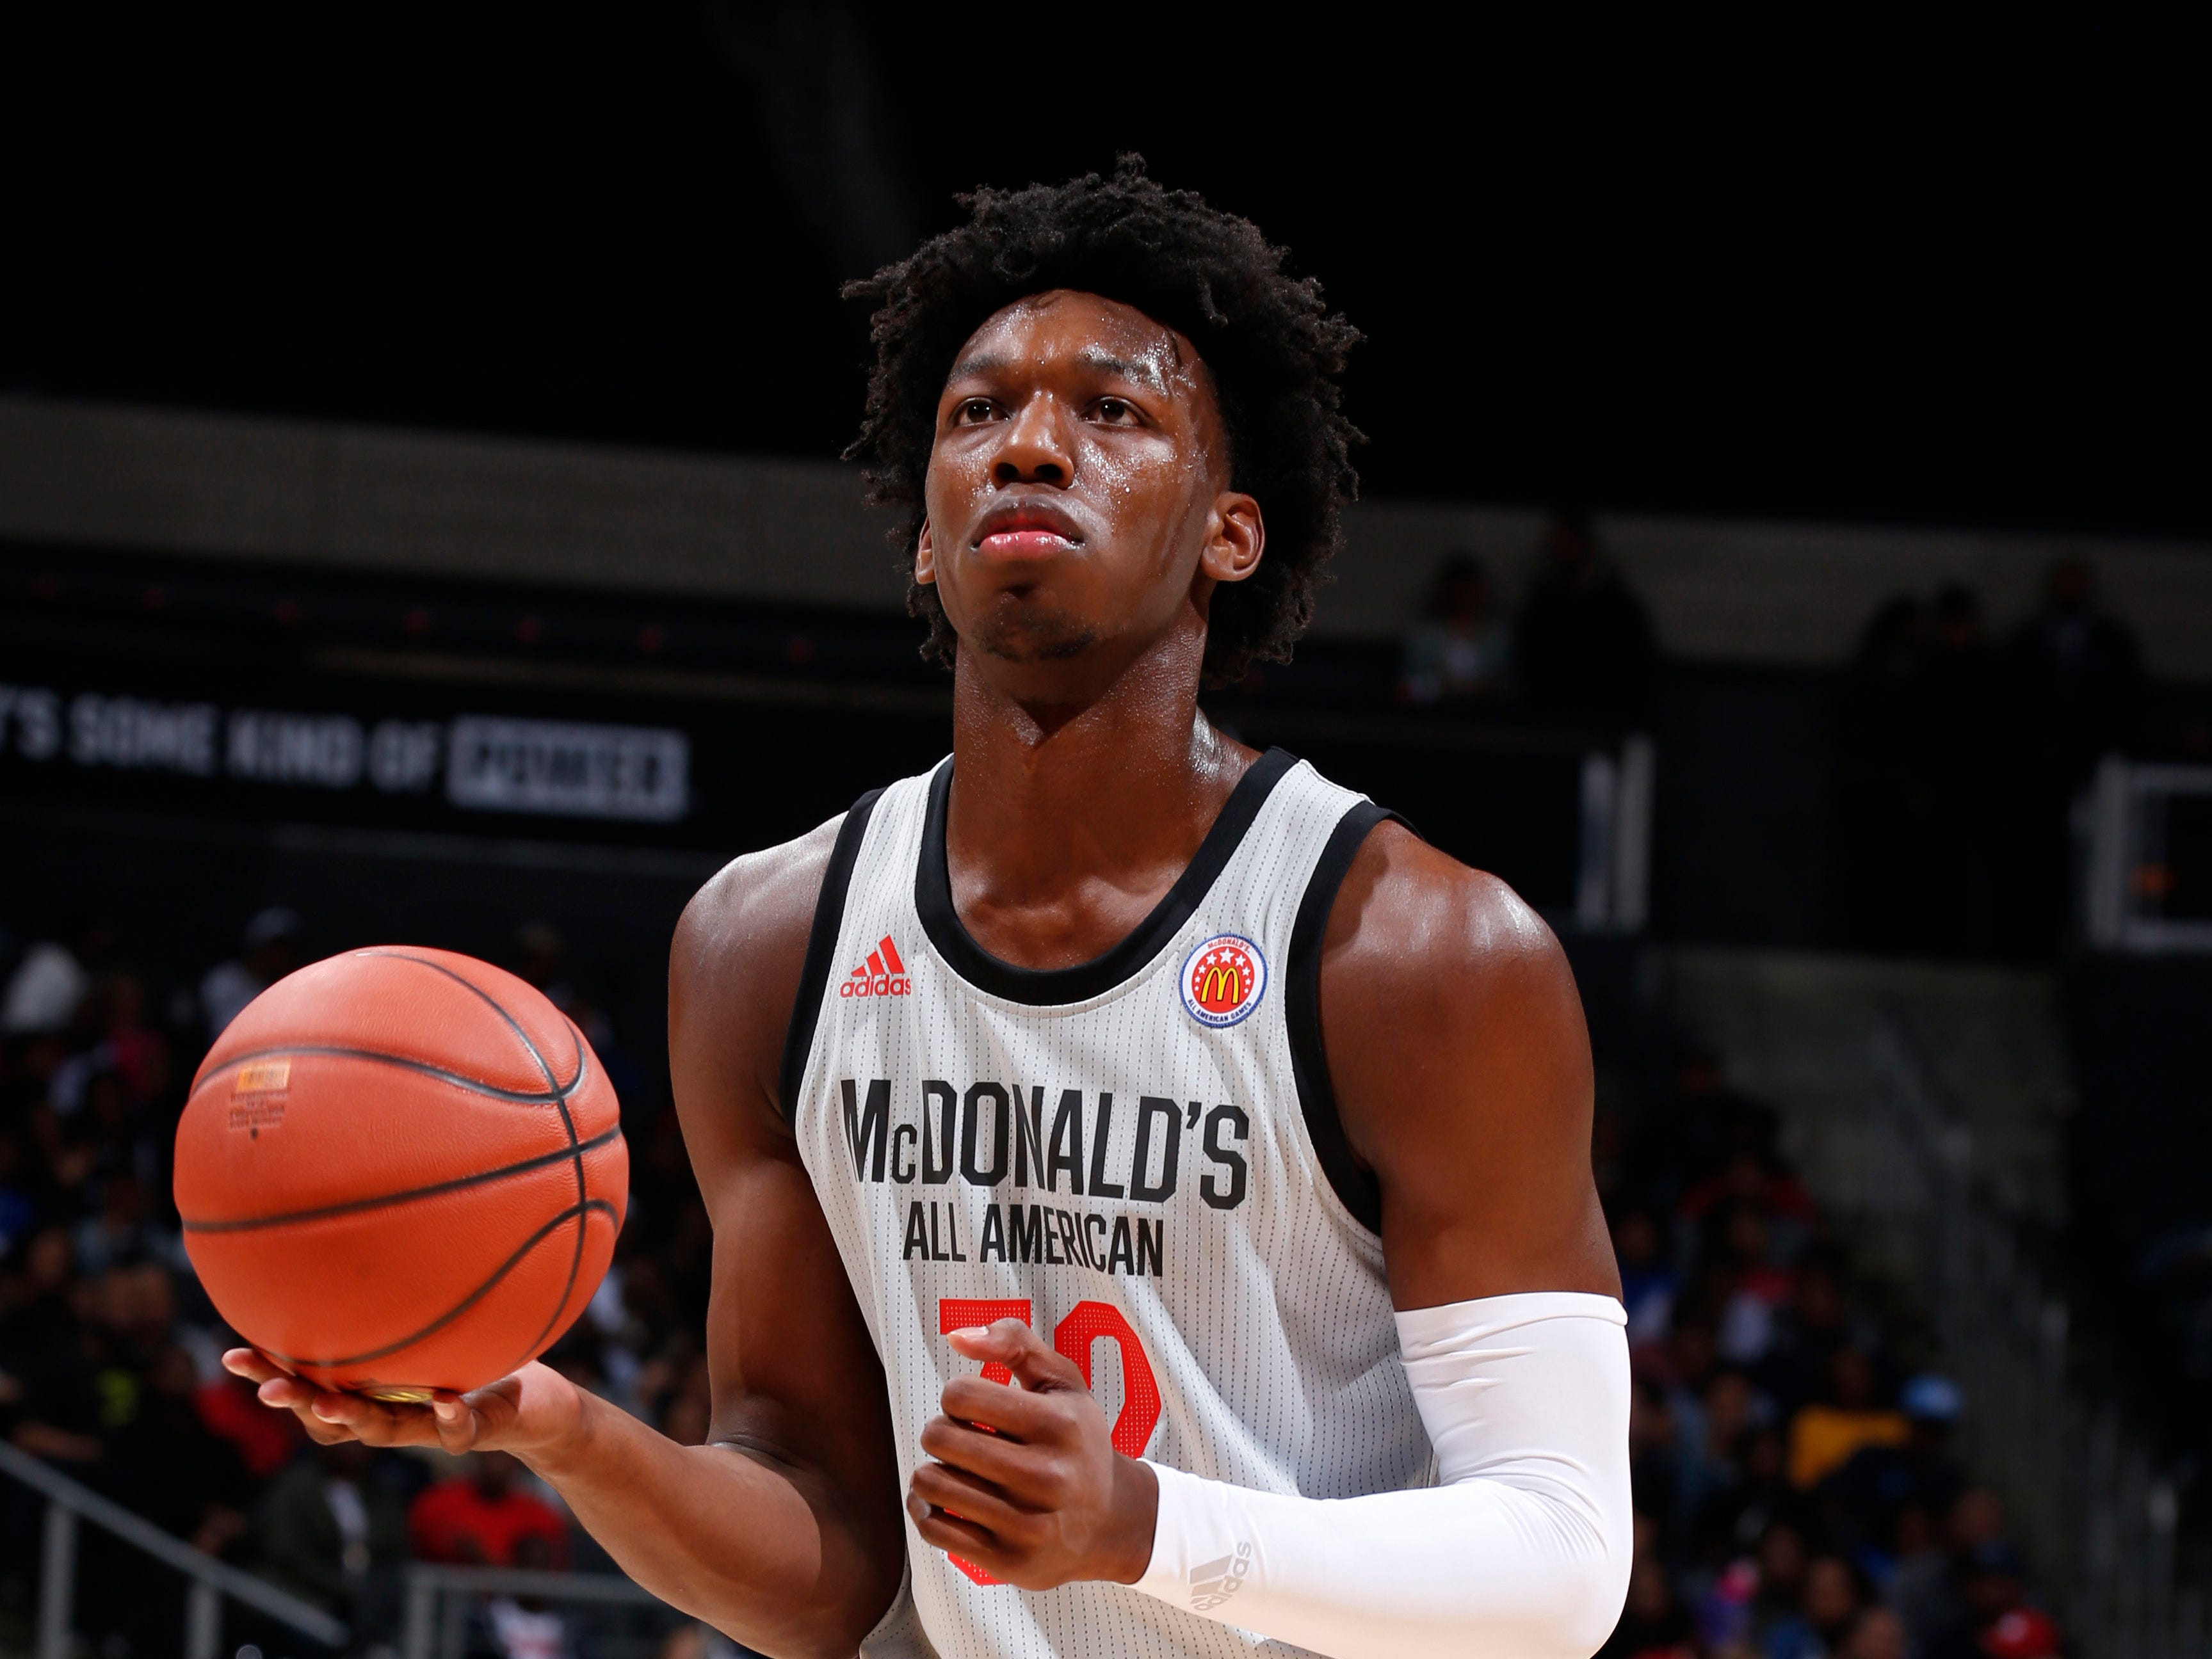 The West's James Wiseman (32) shoots a free throw during the McDonalds  All-American Game in Atlanta on March 27, 2019.